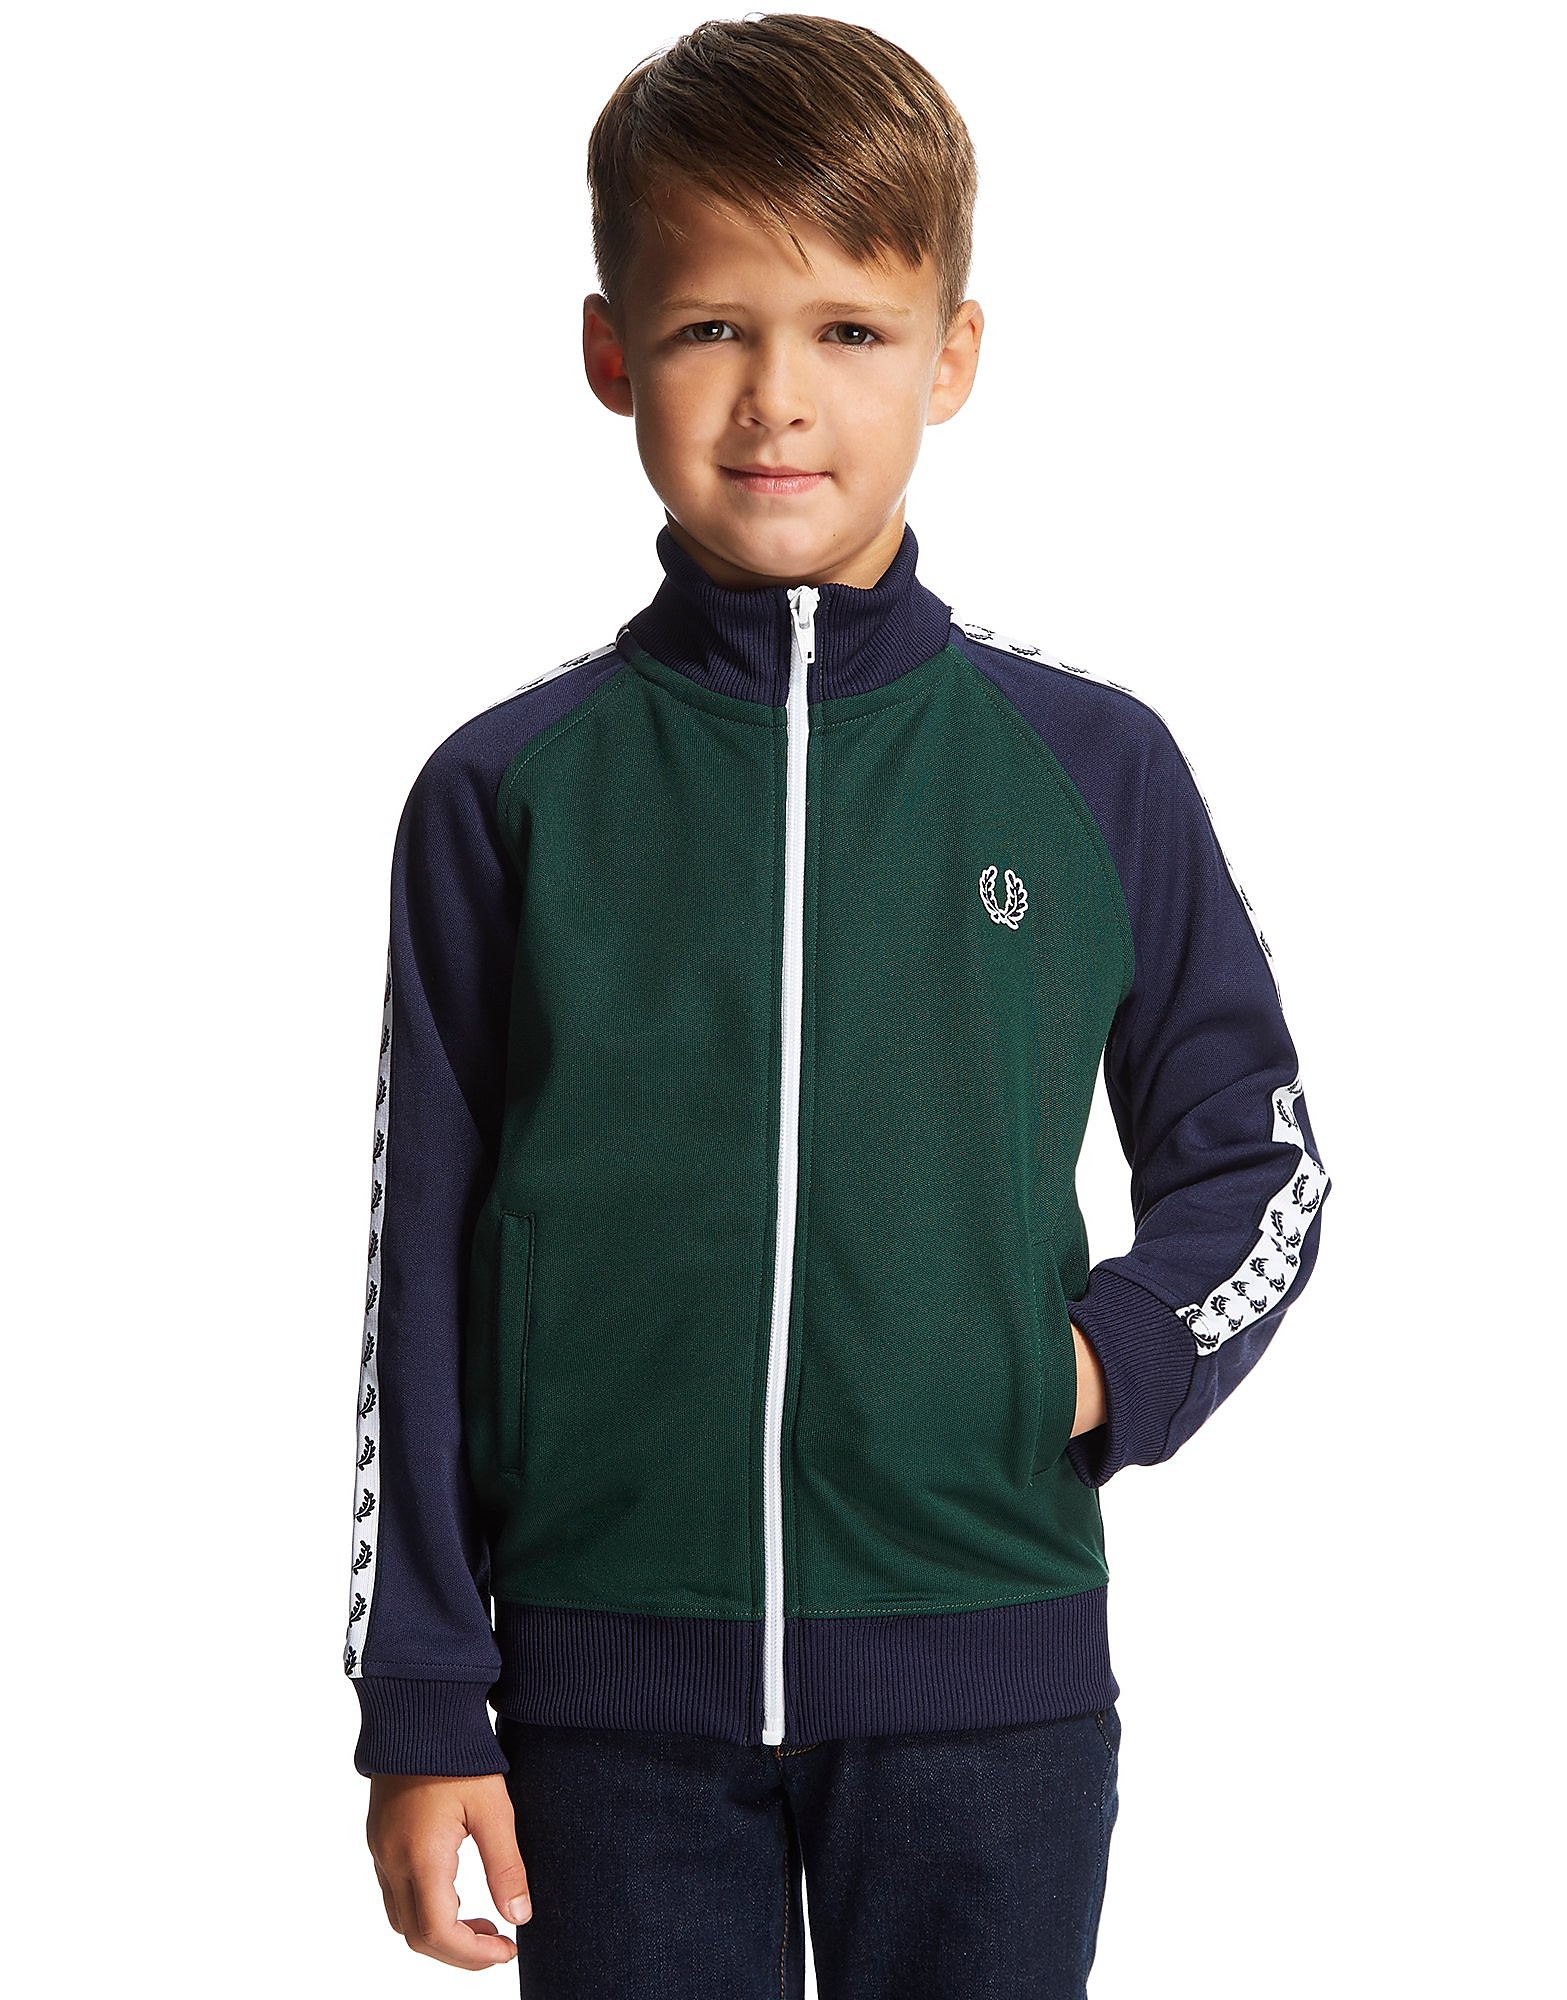 Fred Perry Tape Track Top Children